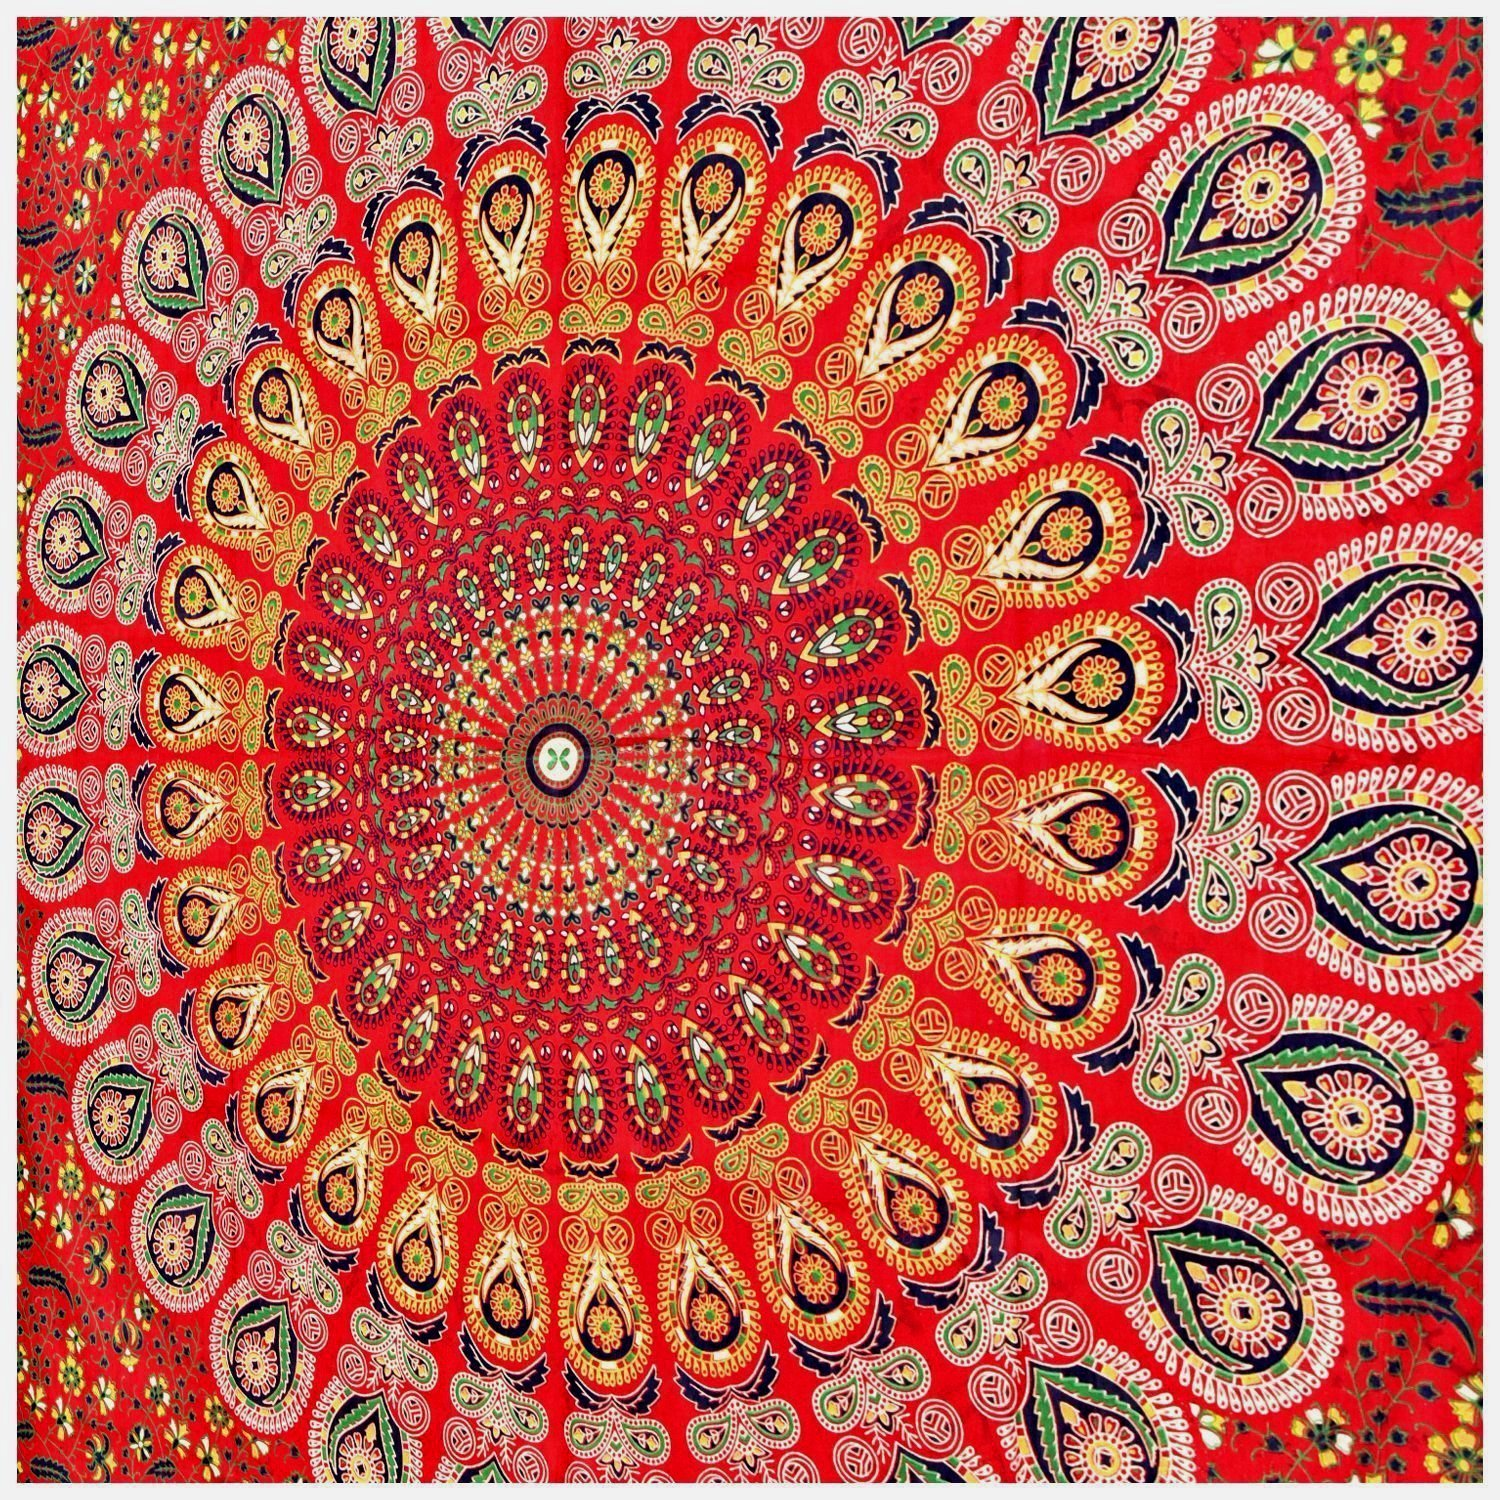 Indian hippie Tapestry Bohemian Psychedelic Peacock Mandala Tapestry Wall hanging Bedding Tapestry Red Tapestry